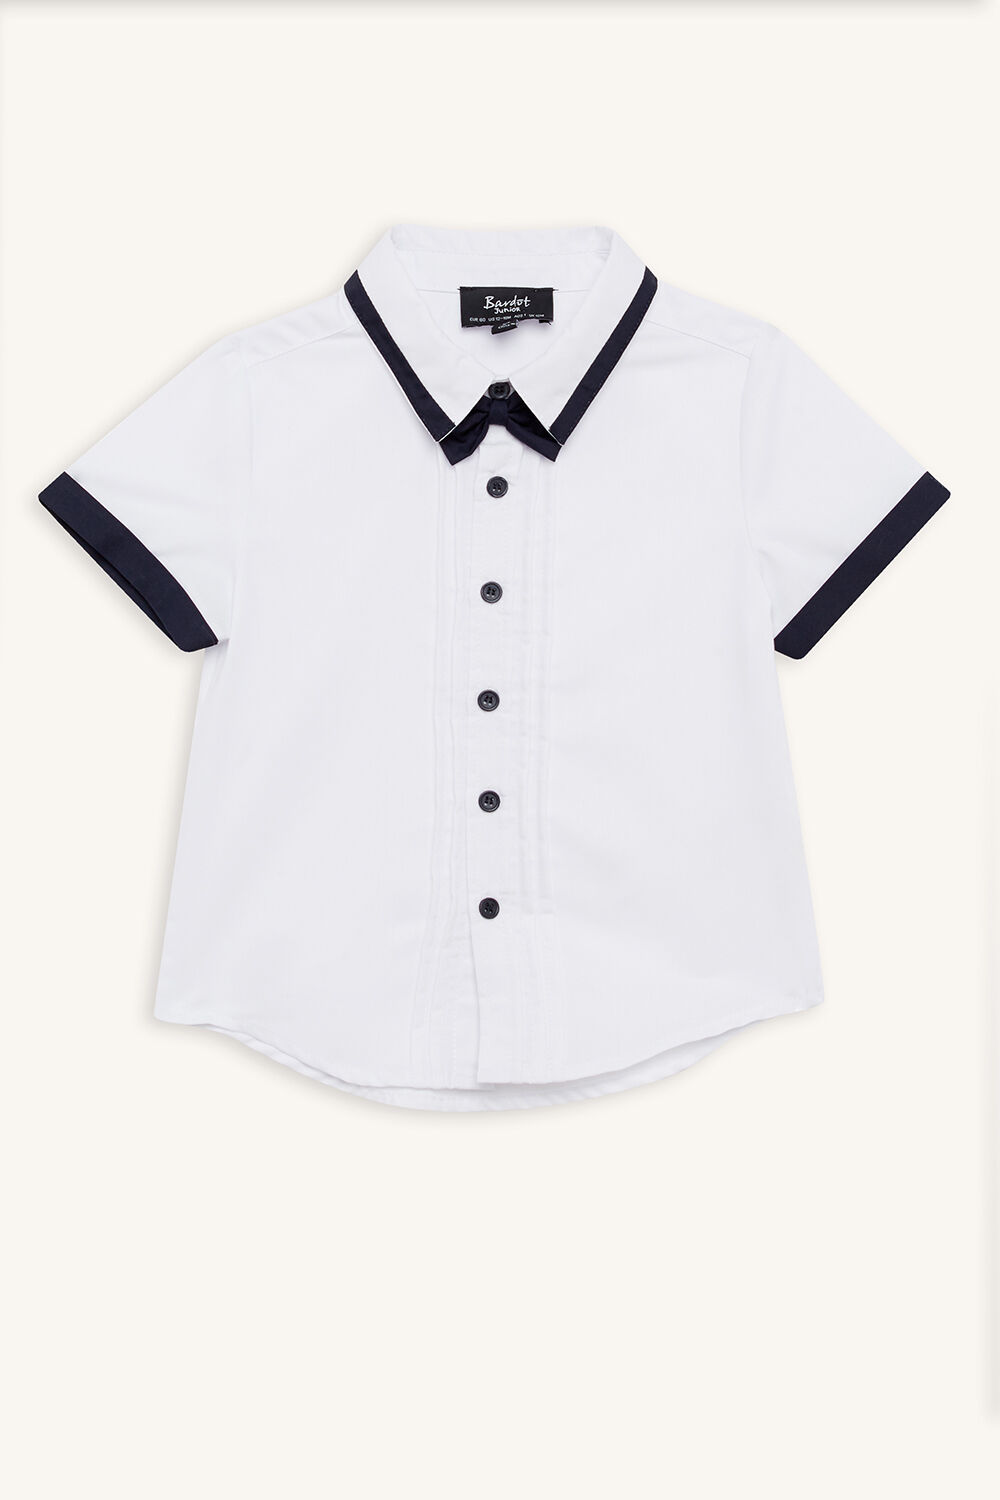 TOM TUX SHIRT in colour BRIGHT WHITE